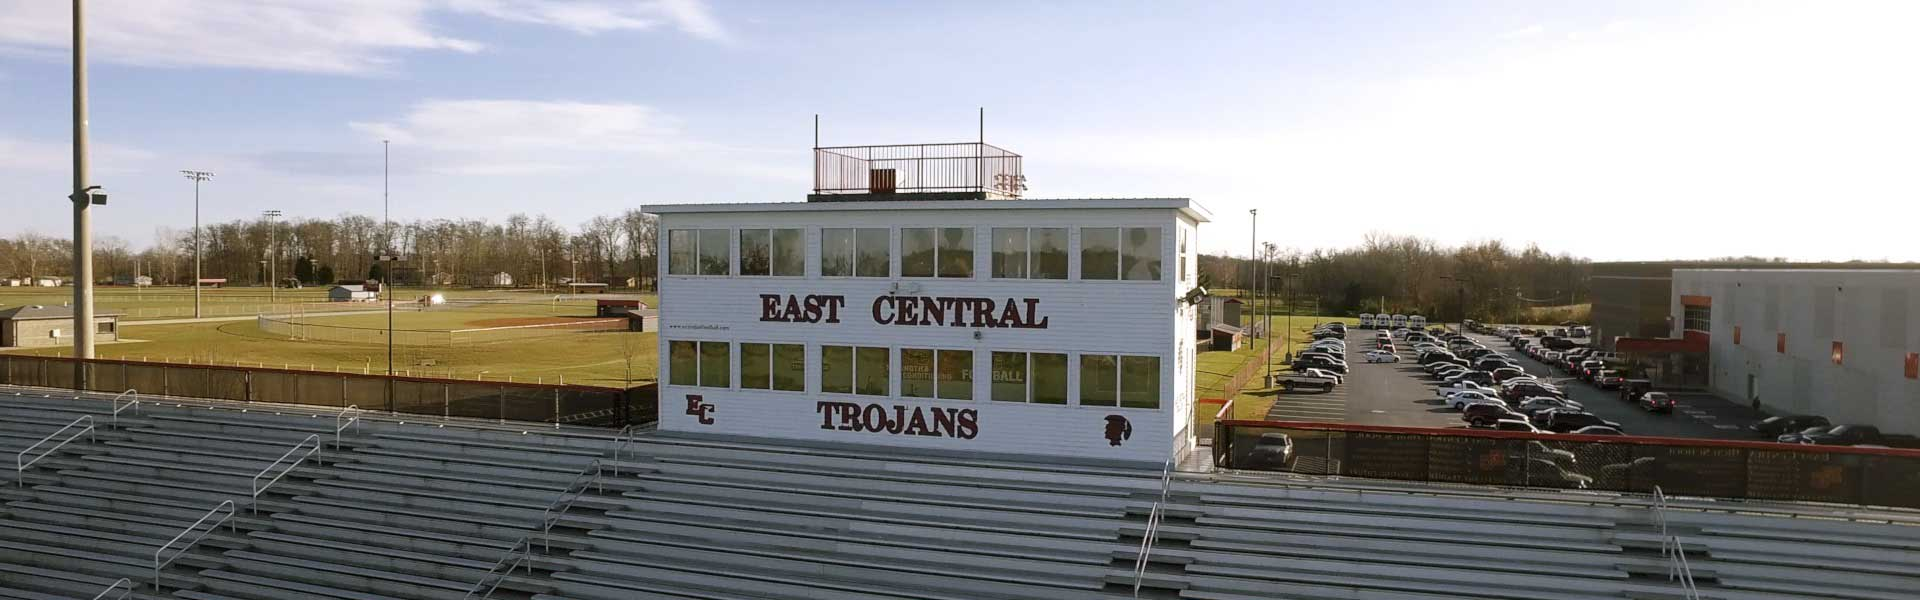 Front View of East Central High School Press Box